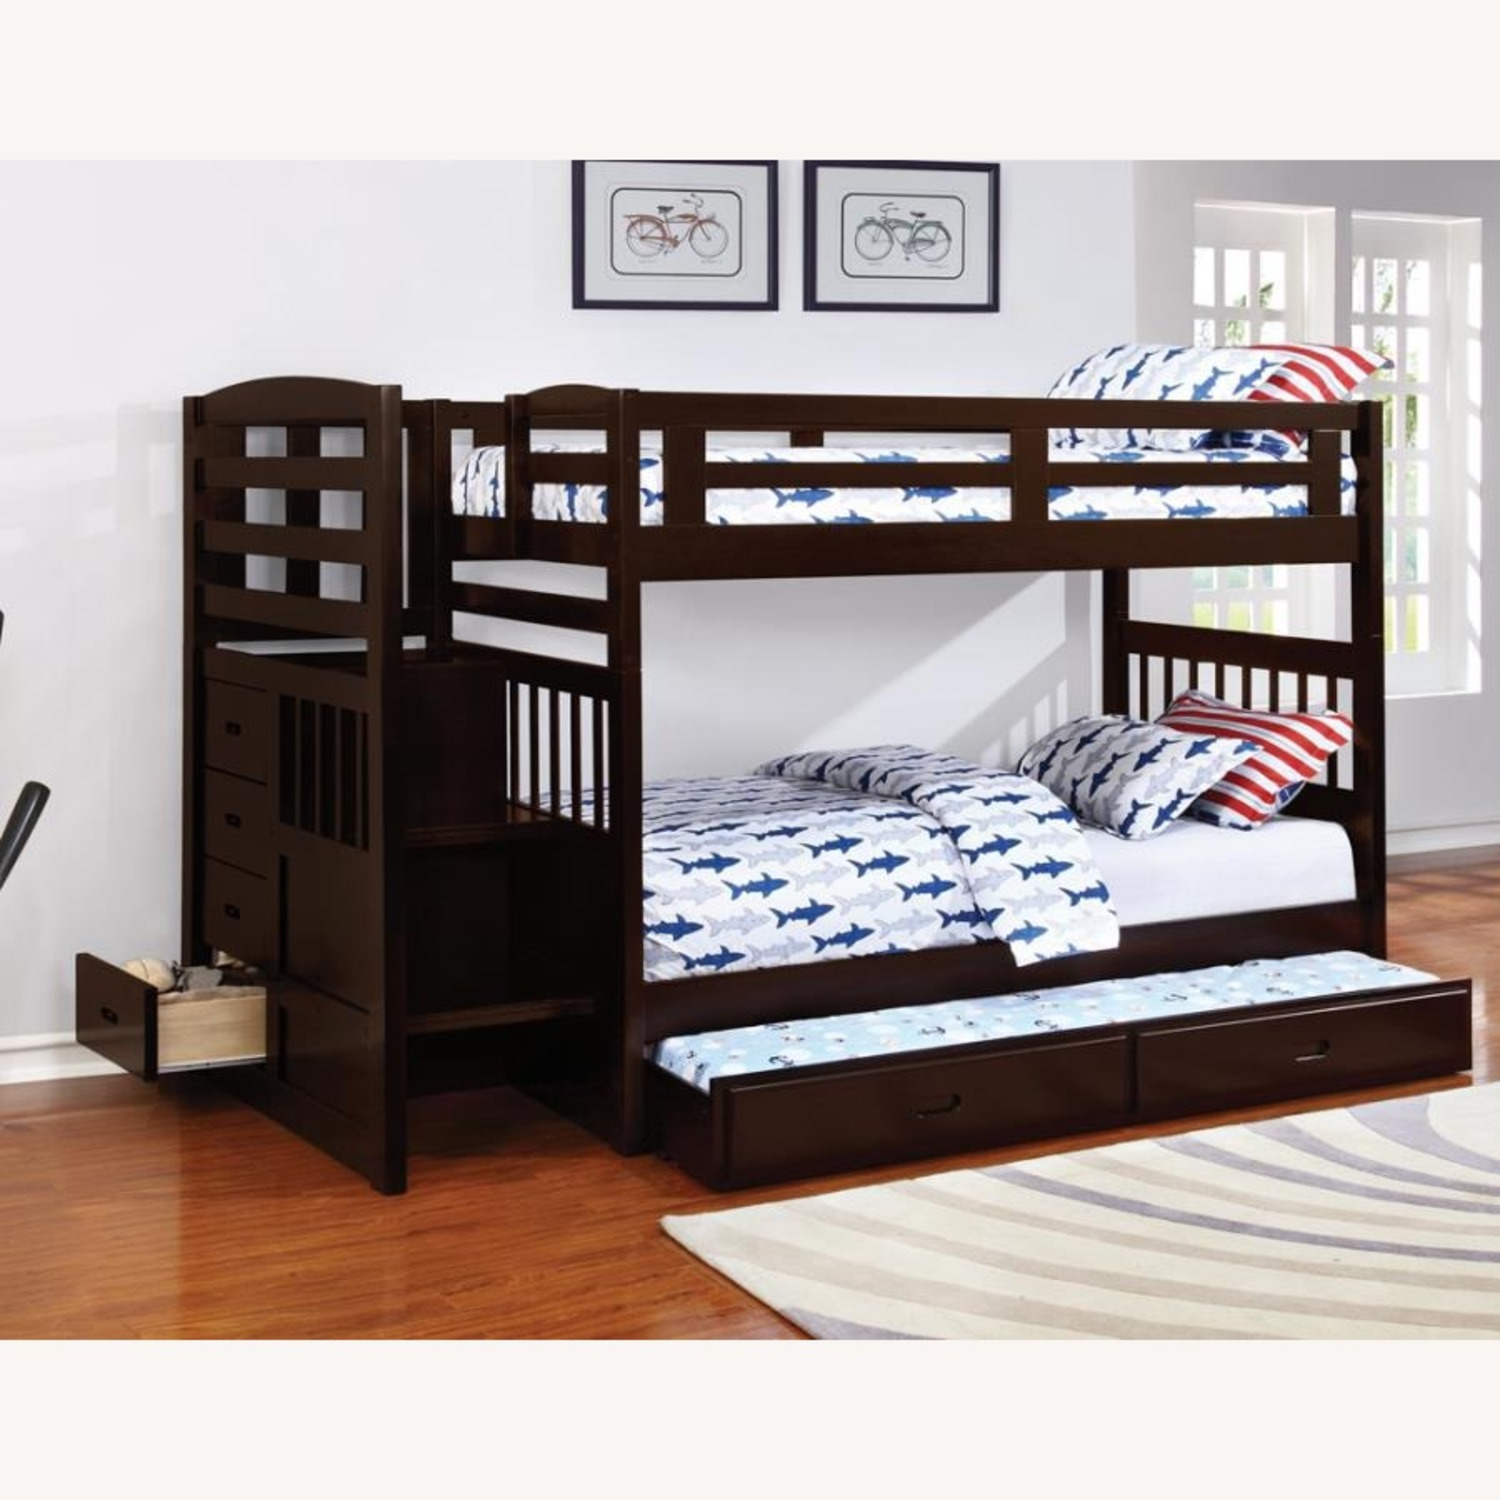 Twin Bunk Bed In Cappuccino W/ Storage Staircase - image-2